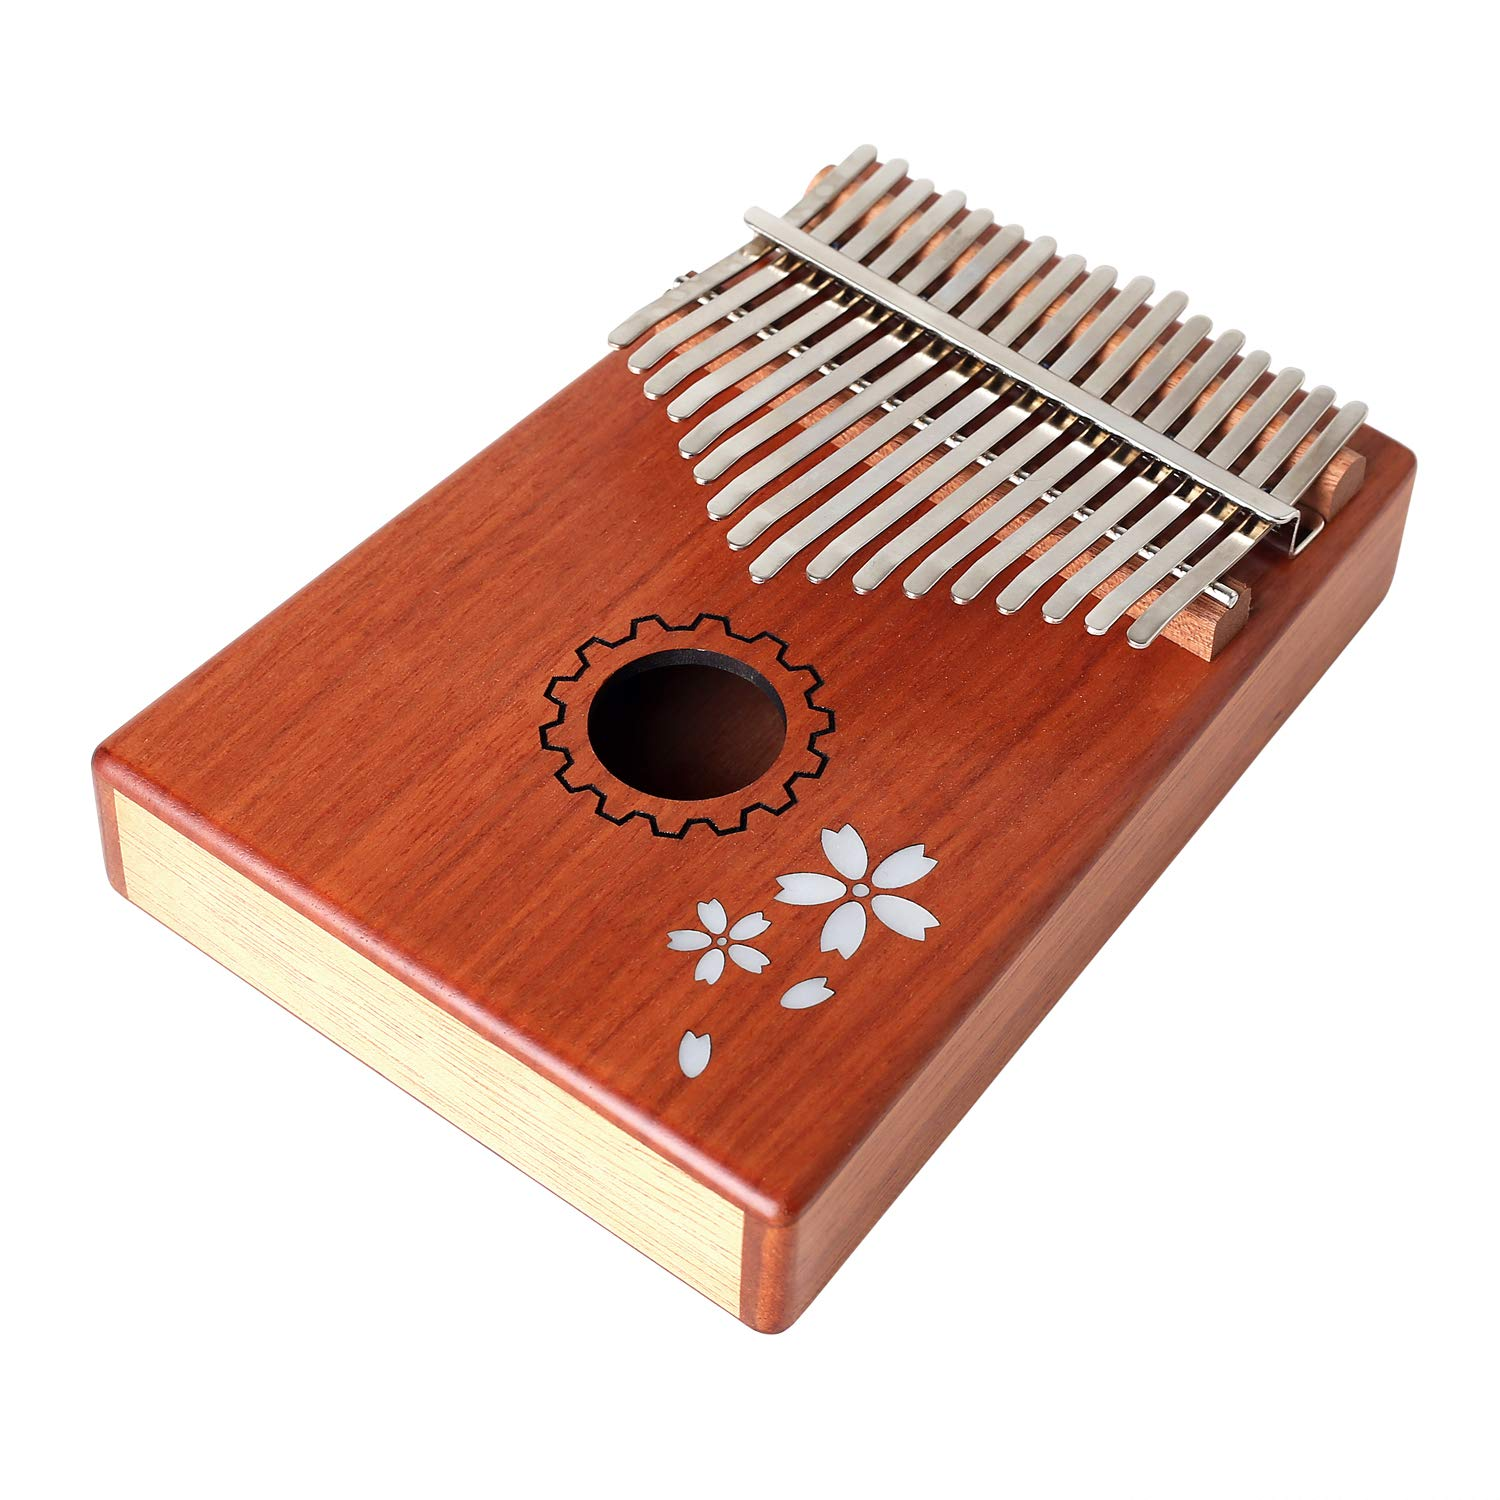 Kalimba Thumb Piano - Portable Music Instrument Gift for Kids,Beginners, Friends,Lovers - DIY and Study Music(17 Keys,Easy to Learn, Relax Your Boby) by DriverGenius (Image #5)